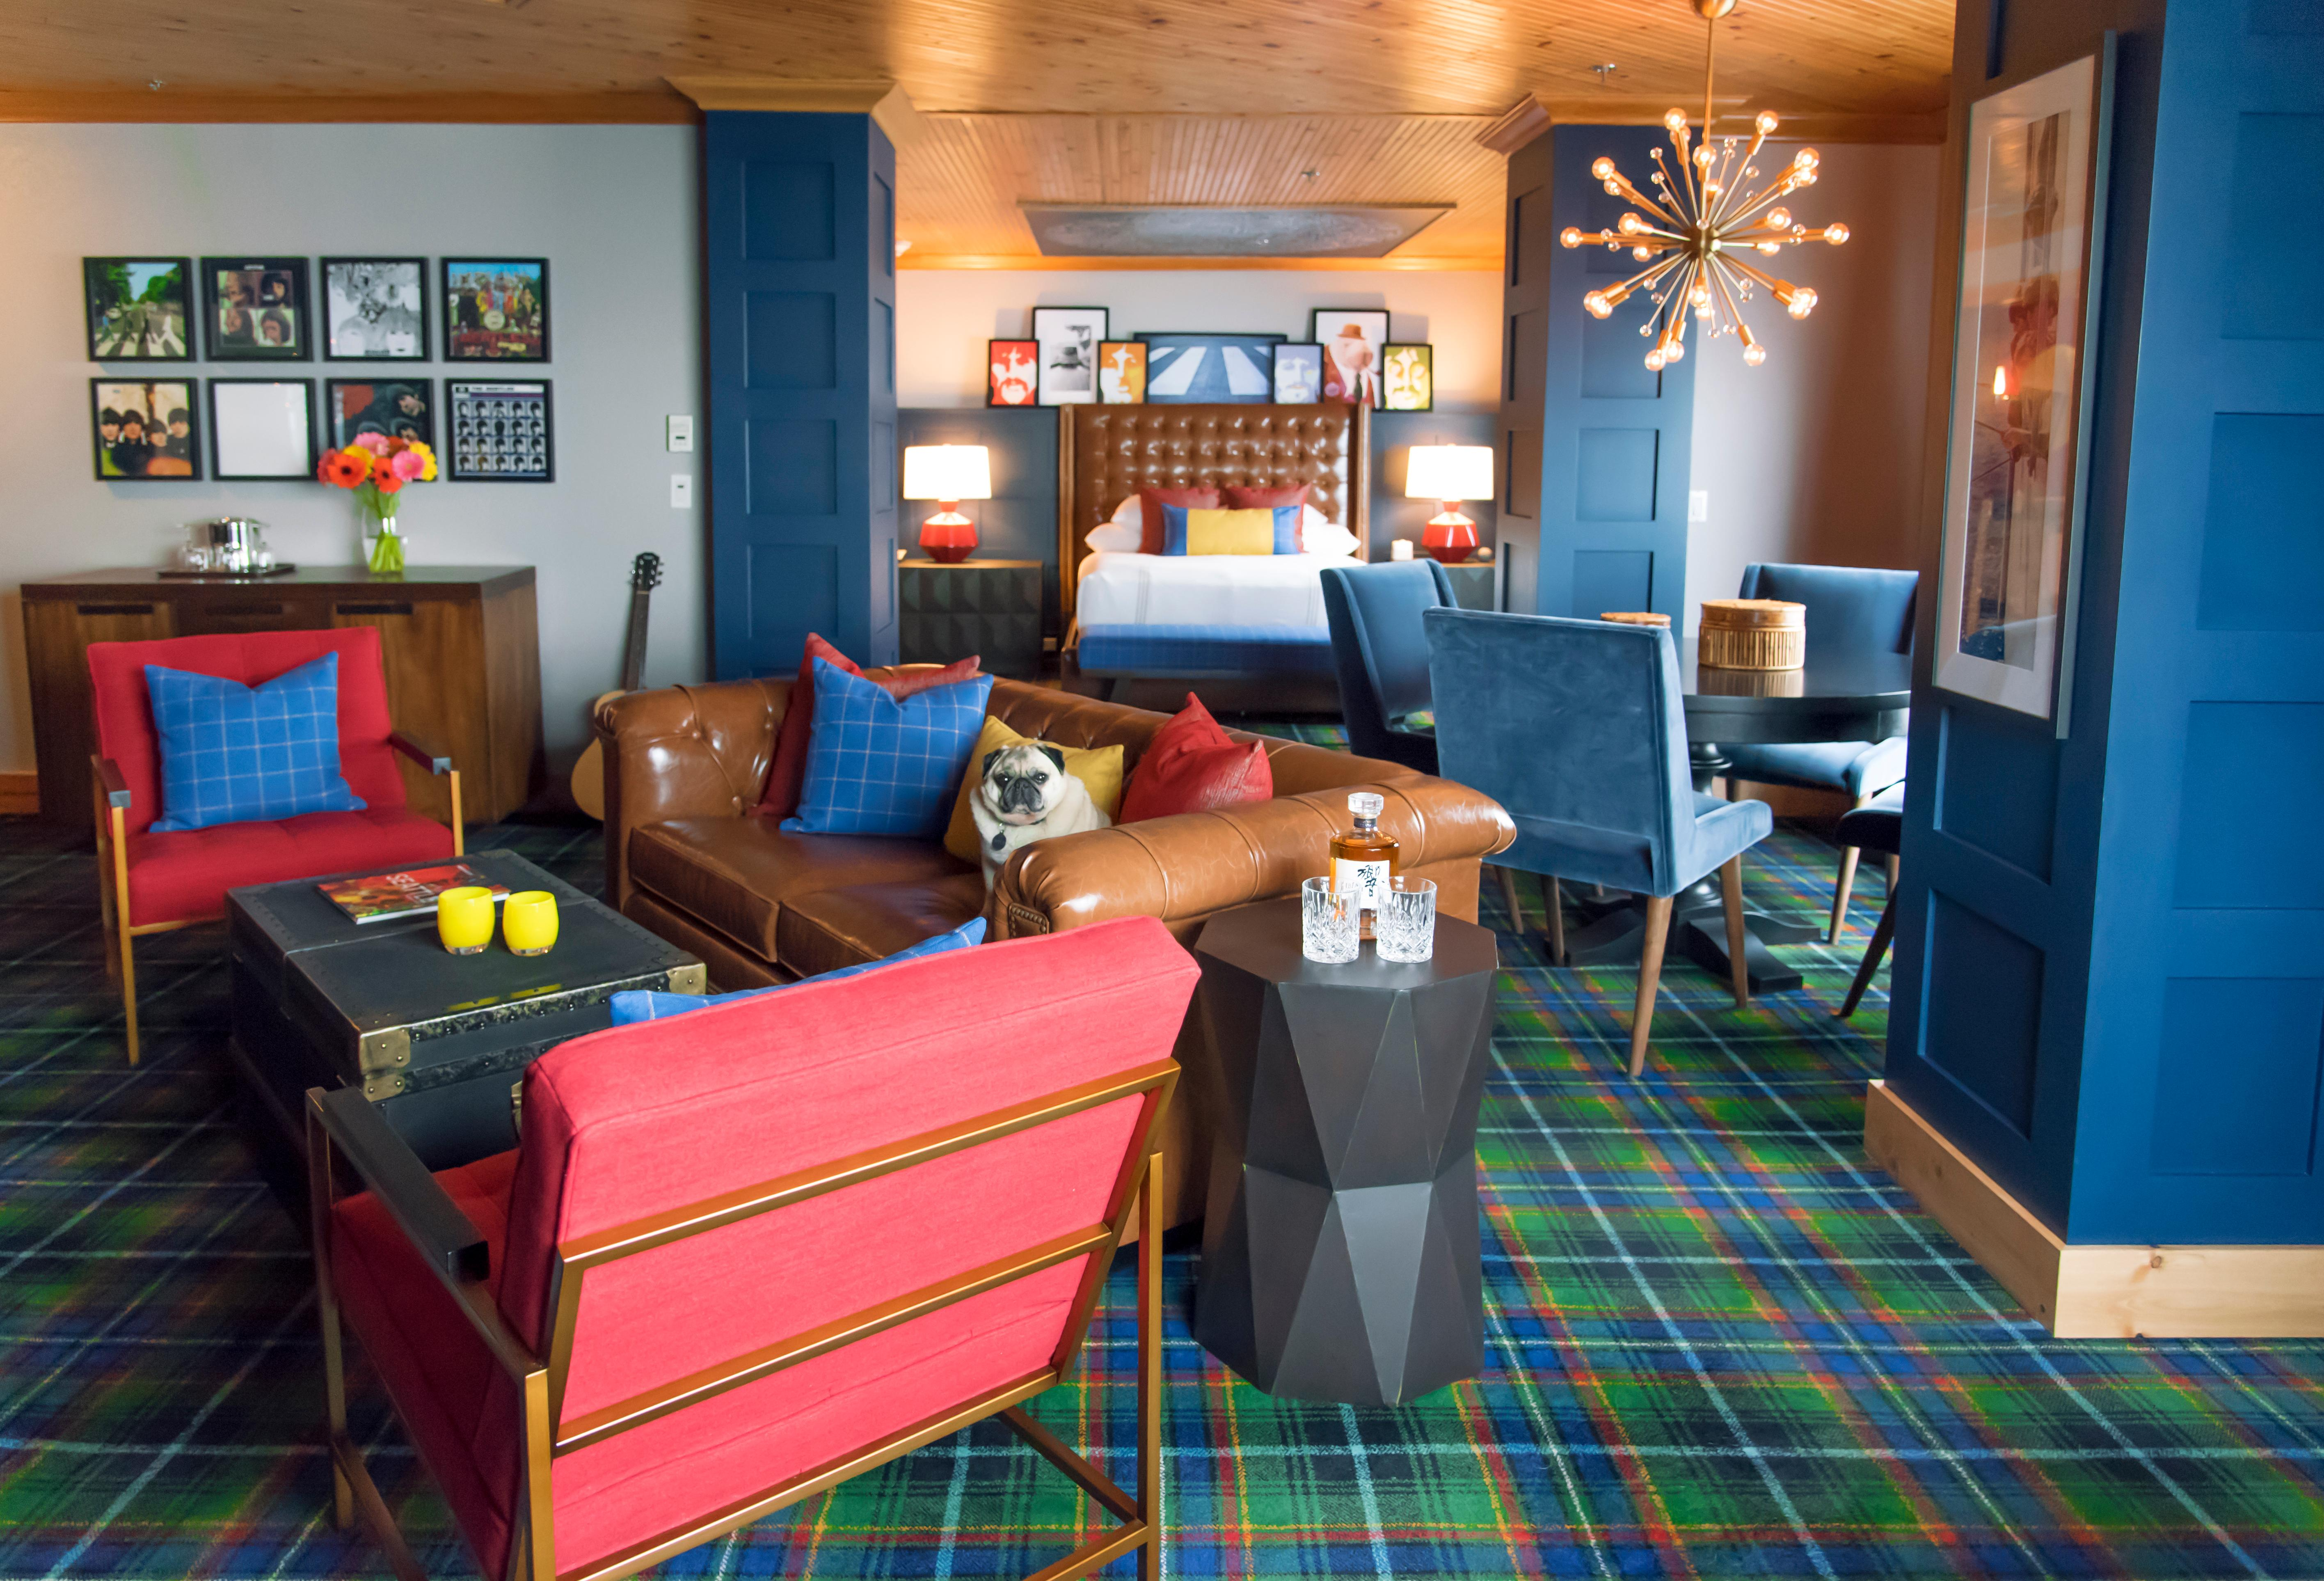 "The Beatles Suite.{ }Guests can stay in the very same room The Beatles once stayed in, where the iconic ""fishing out the window"" photo was captured of the band fishing out the window, in The Edgewater's famous Beatles Suite. The suite includes fascinating portraits, memorabilia, Beatles history and music. With contemporary elements of dark metals, white glass, leather, and designer lighting, this is the ultimate entertainment suite for music lovers. The iconic Beatles Suite, which has long been a tribute to the hotel's famed guests, received a design refresh in 2018, complete with new Beatles memorabilia, turntables, records, and much more for the ultimate fan to indulge in. (Image courtesy of Edgewater Hotel)"